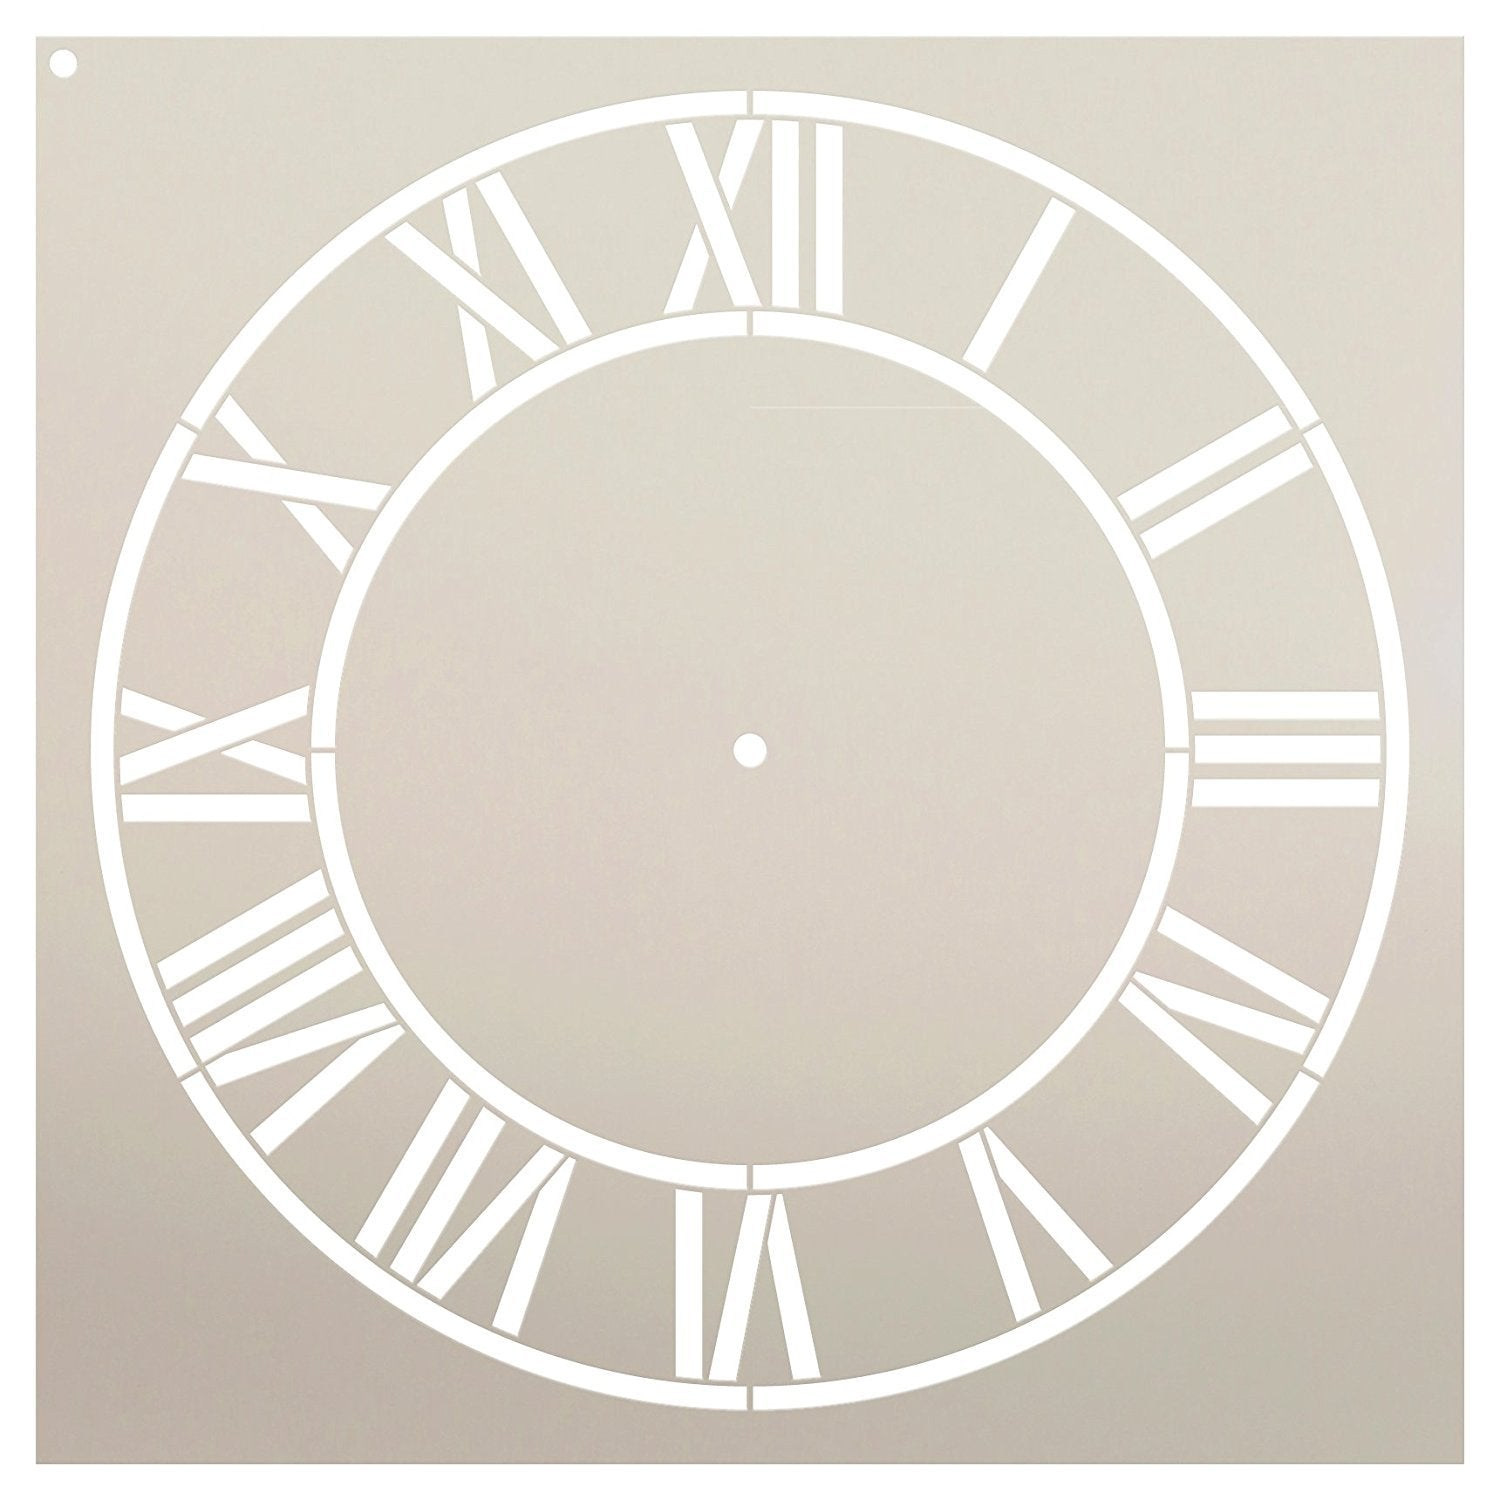 "Country Home Clock Face Stencil by StudioR12 | Roman Numerals Clock Art - Reusable Mylar Template | Painting, Chalk, Mixed Media | DIY Decor - STCL2332 - SELECT SIZE (18"" Diameter)"